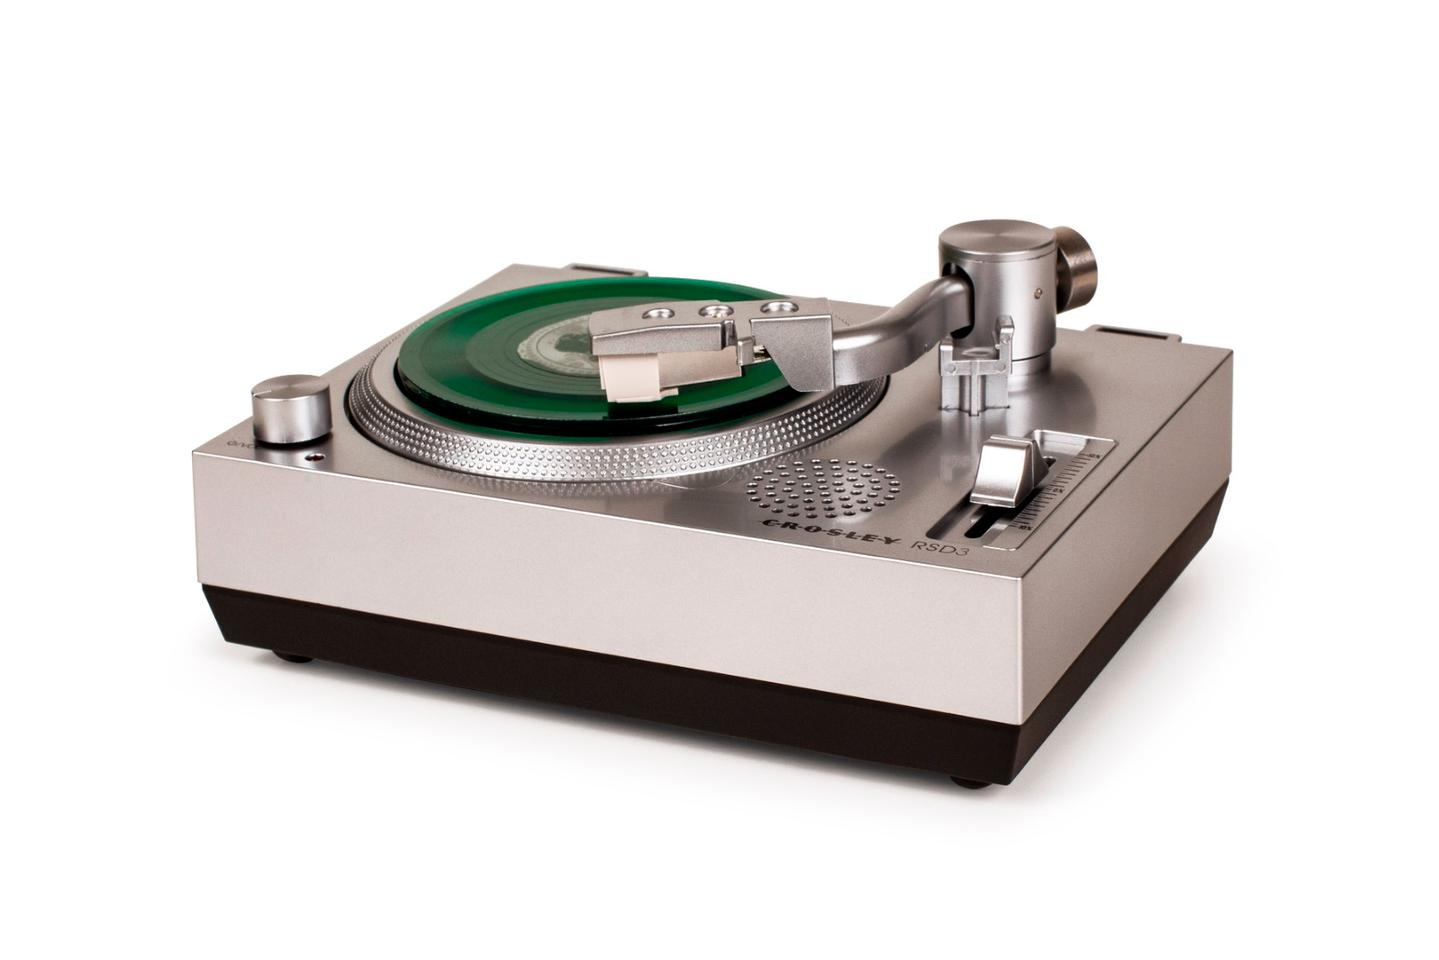 The RSD3 has the look of a Technics SL-1200, in miniature form